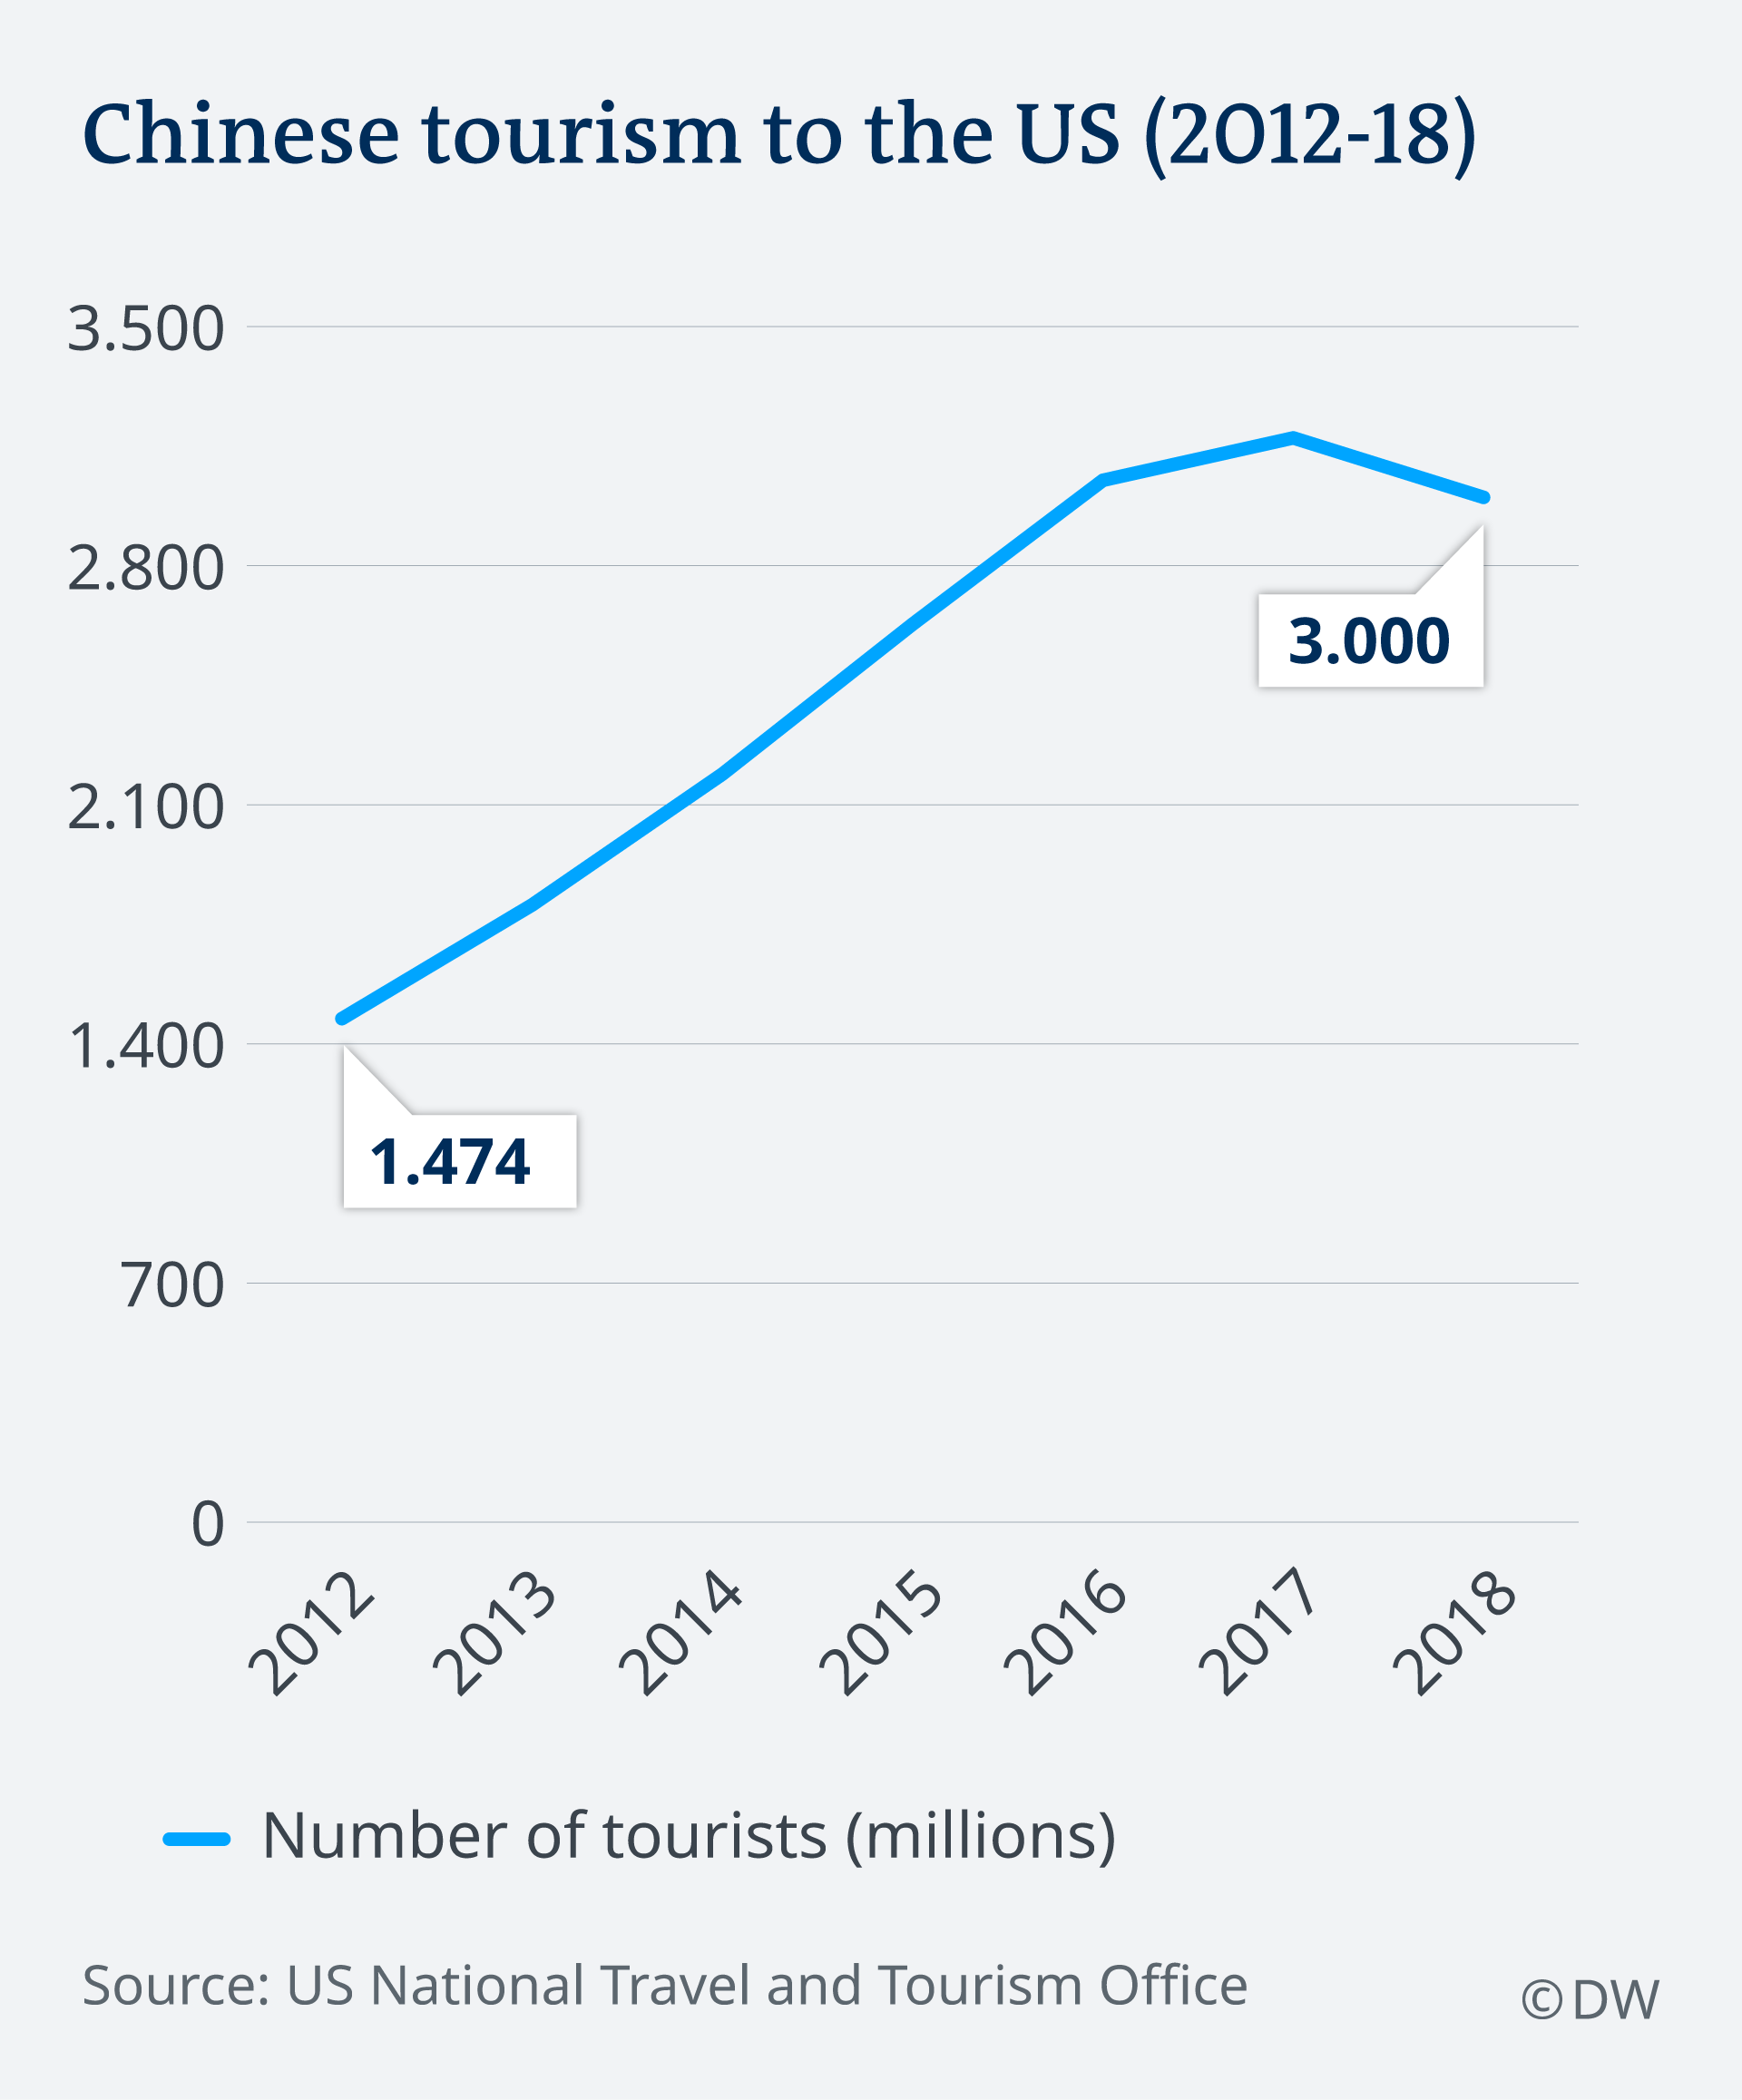 Grafik showing Chinese tourism to the US falling